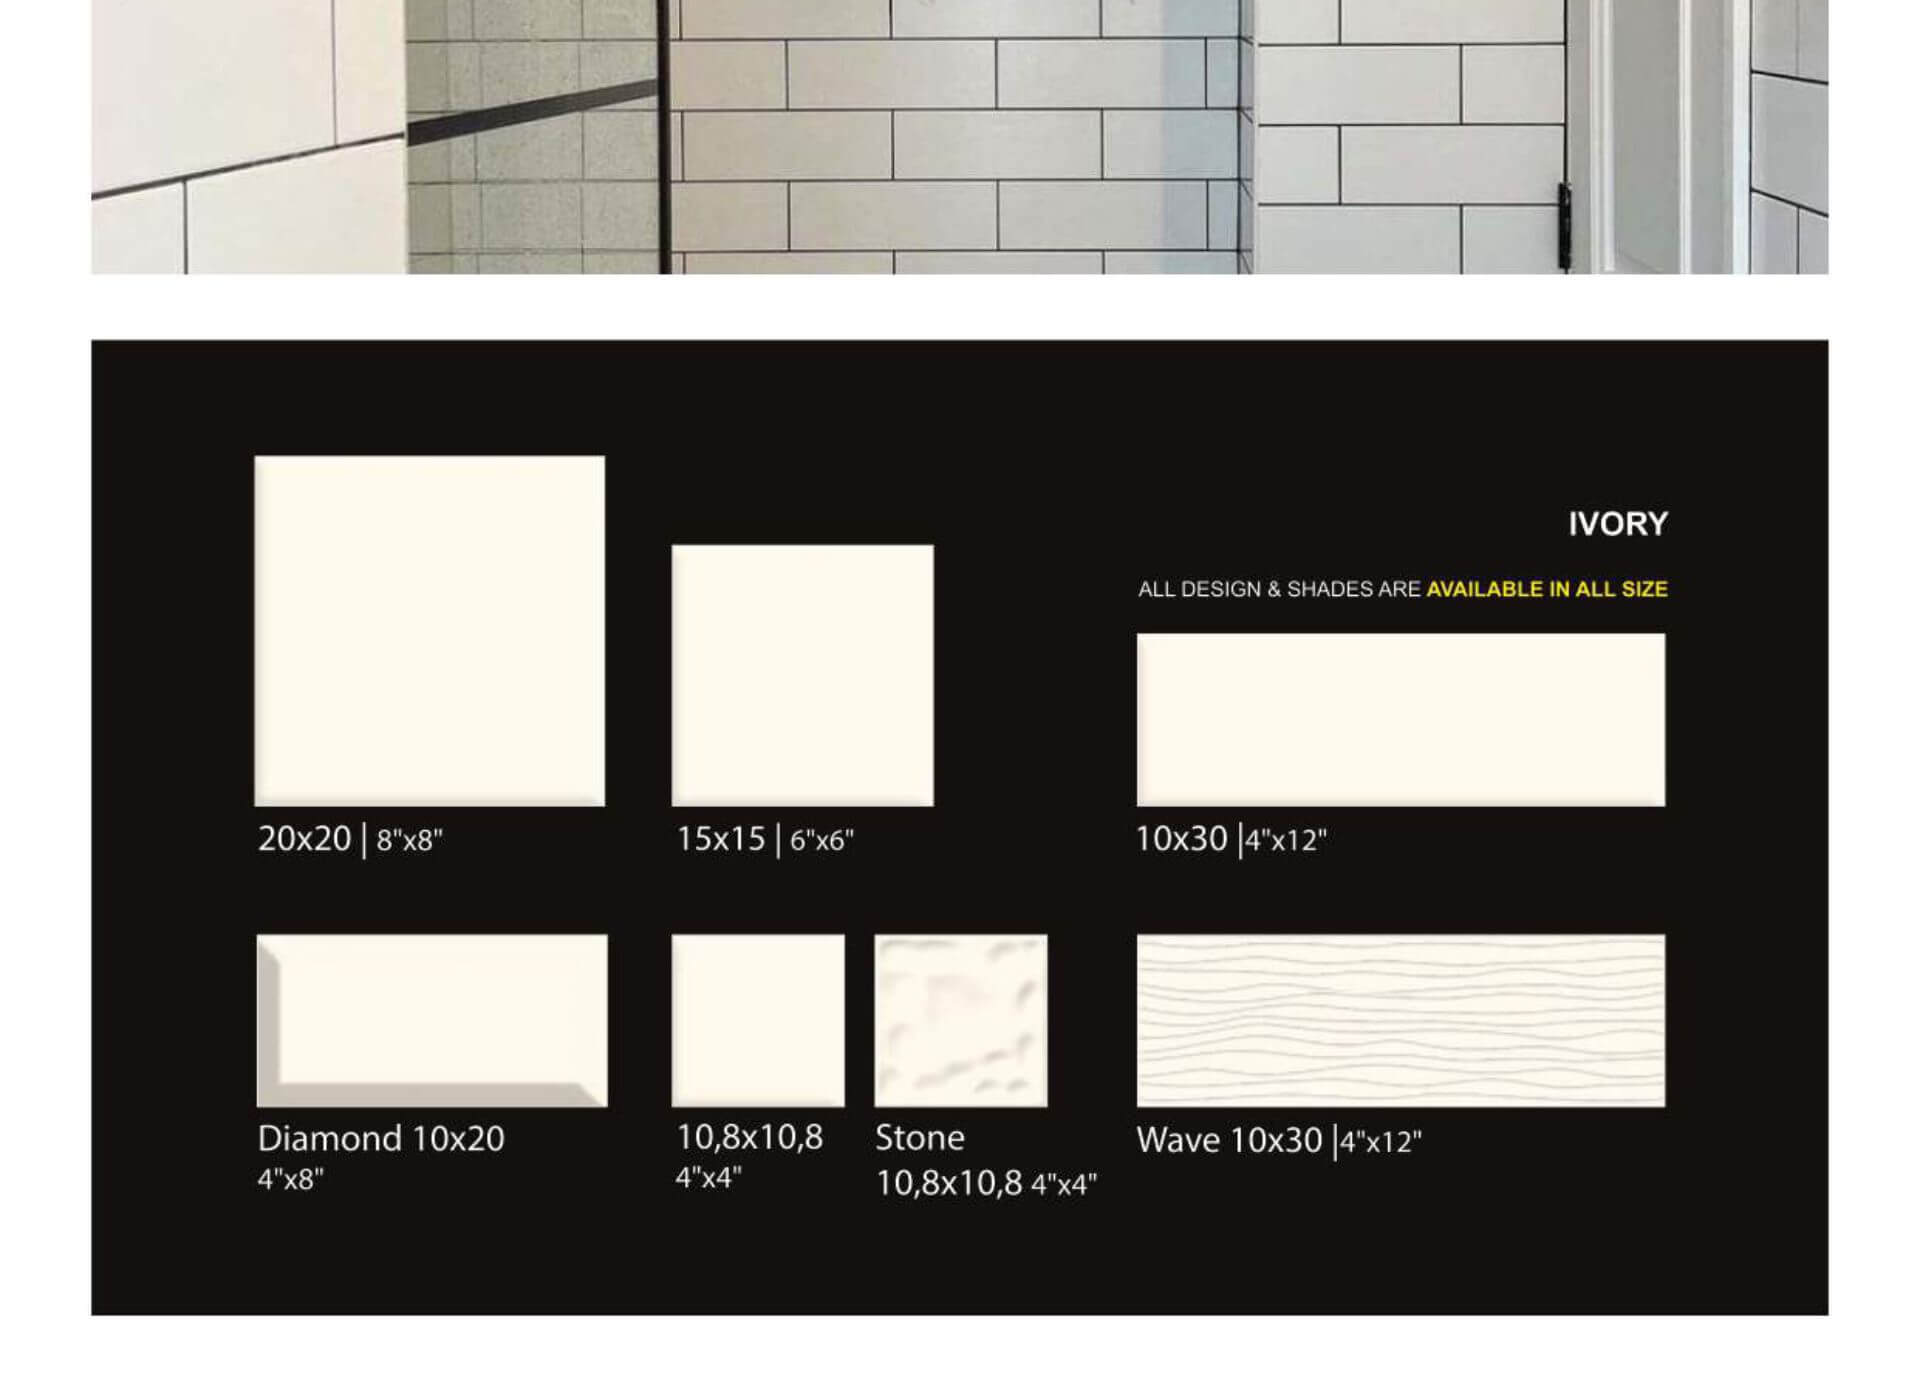 Subway-Tiles-All-Sizes-Page4